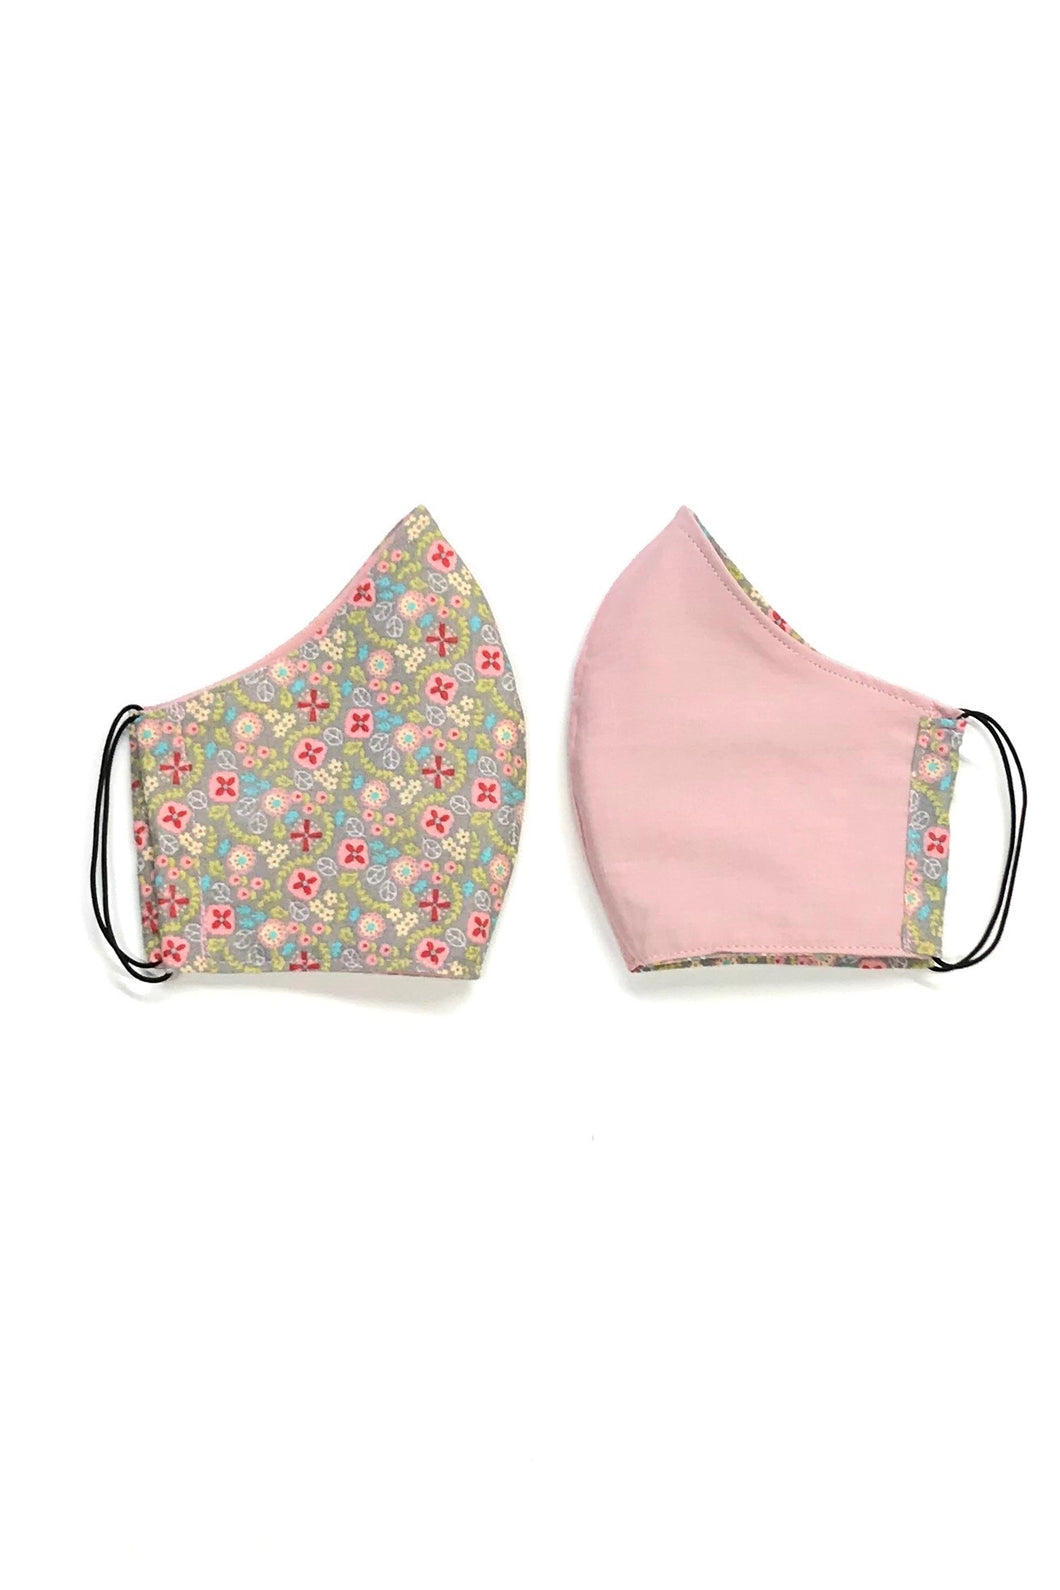 Adult Reversible 3 Layer Fabric Face Mask - Floral